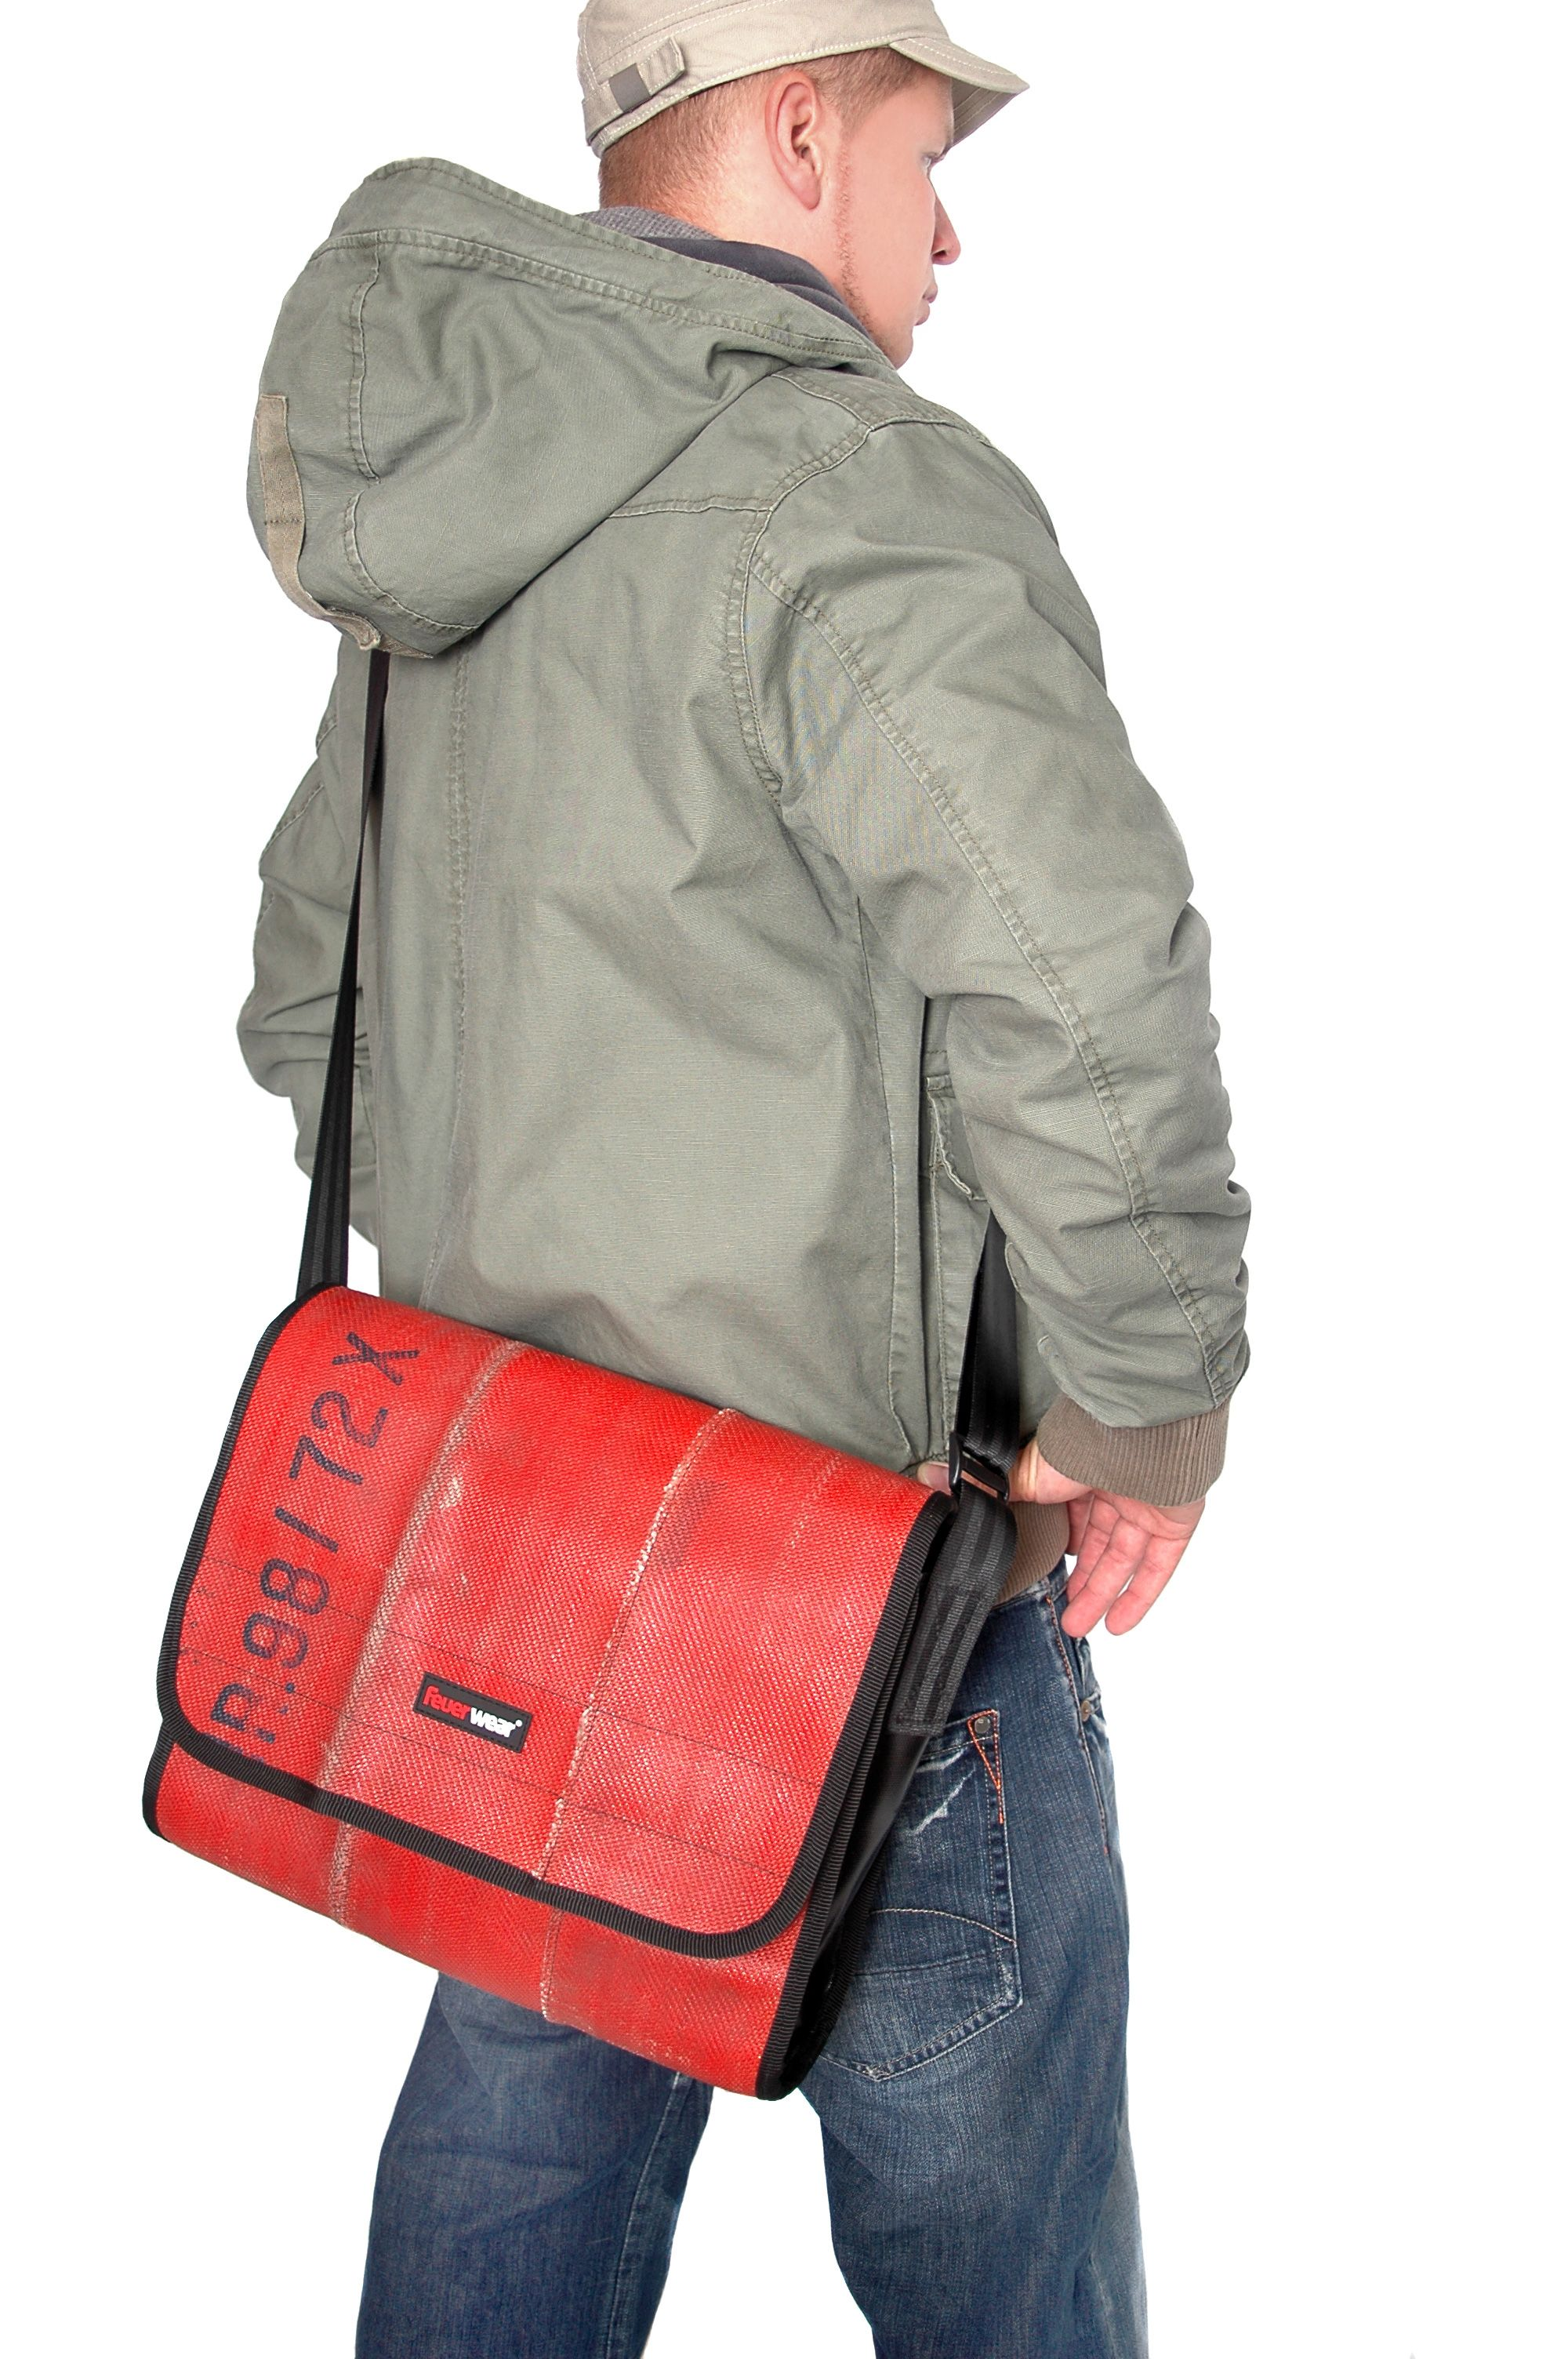 messenger bag recycled materials